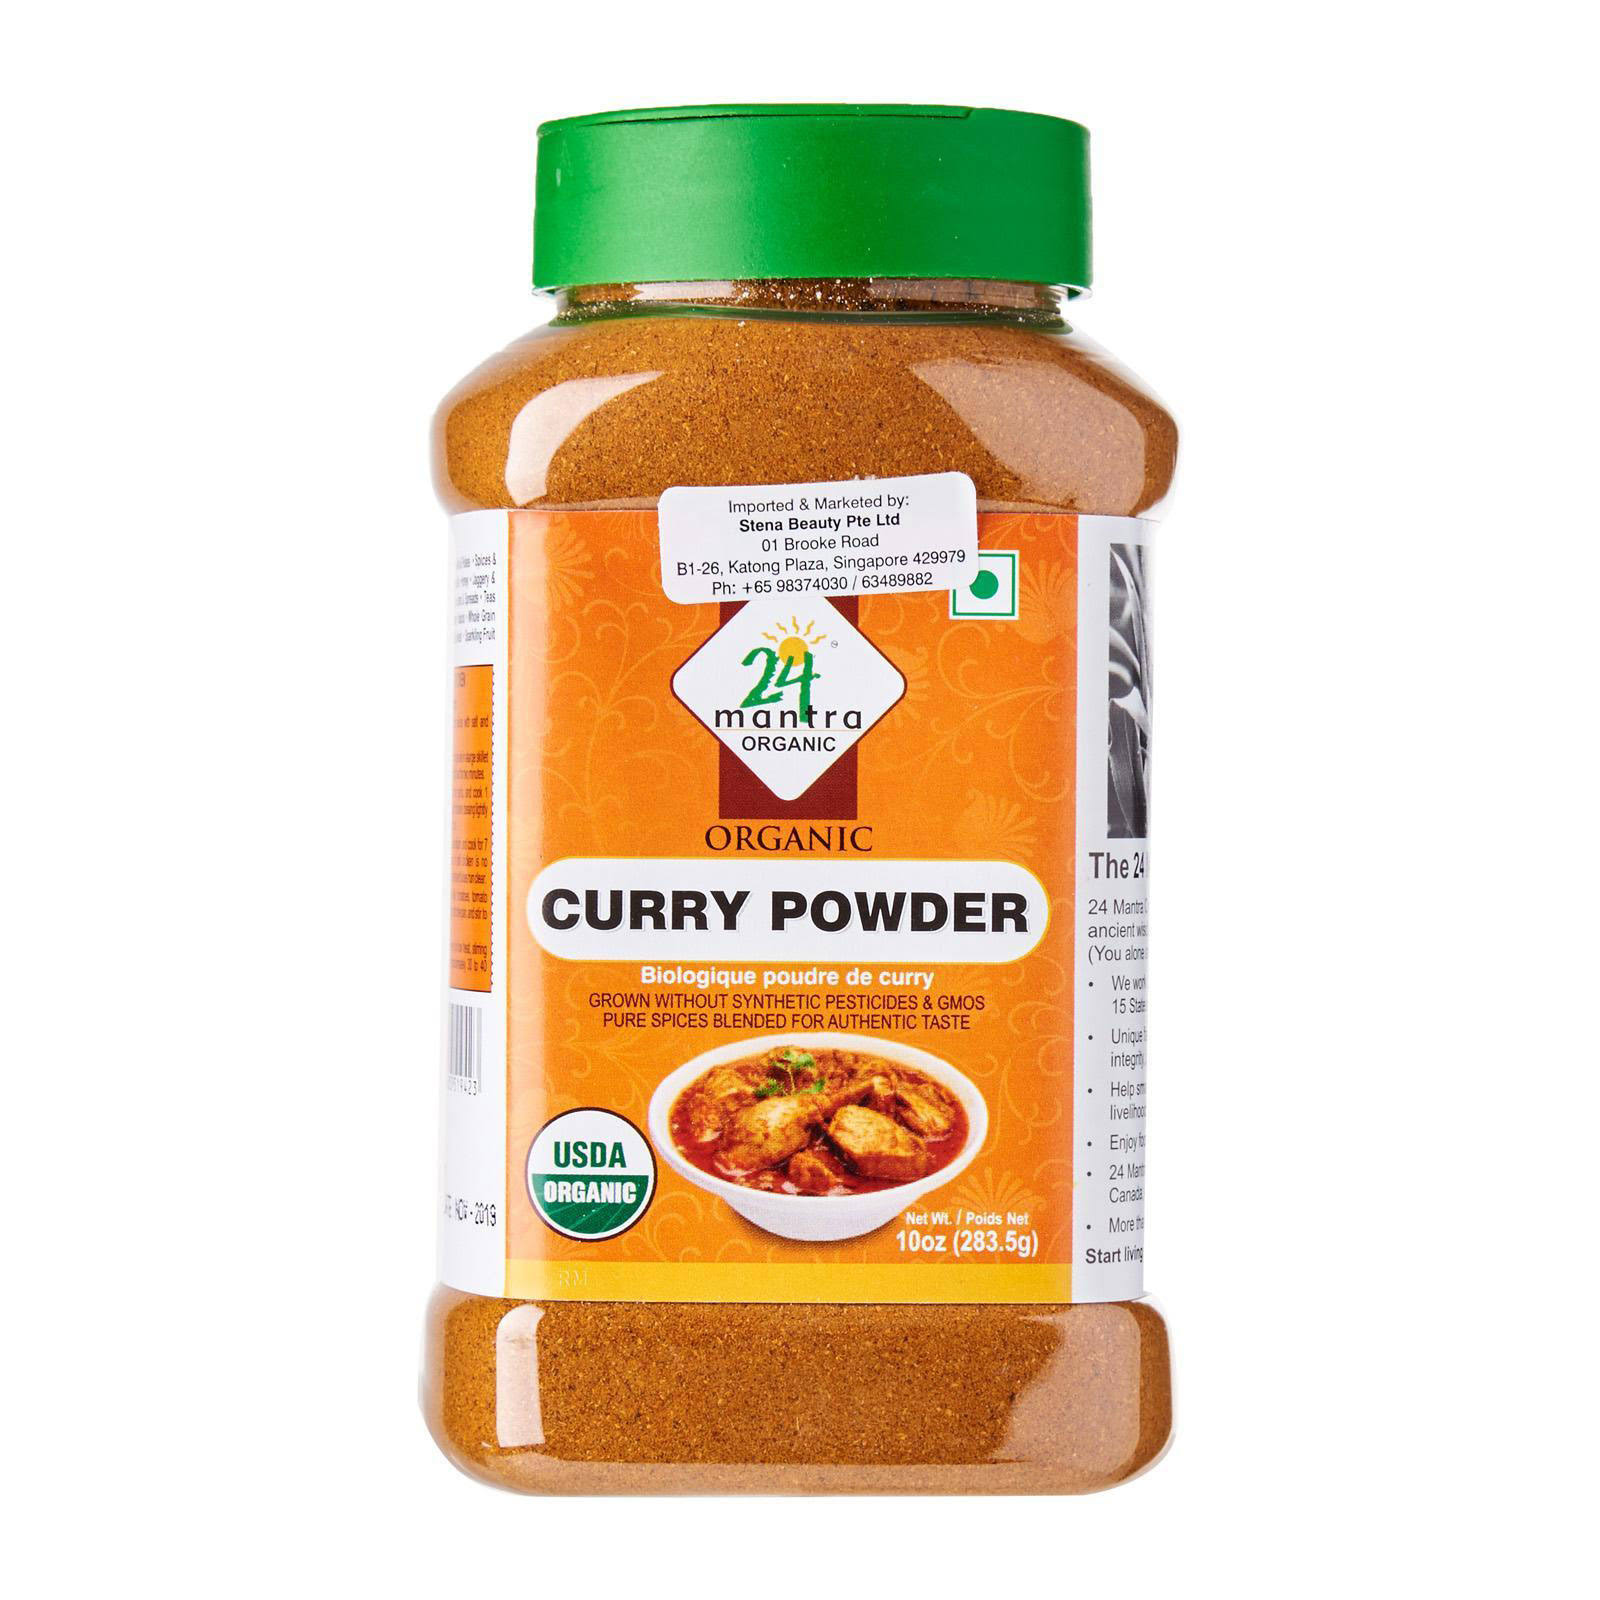 24 Mantra Organic Powder, Organic, Curry - 10 oz